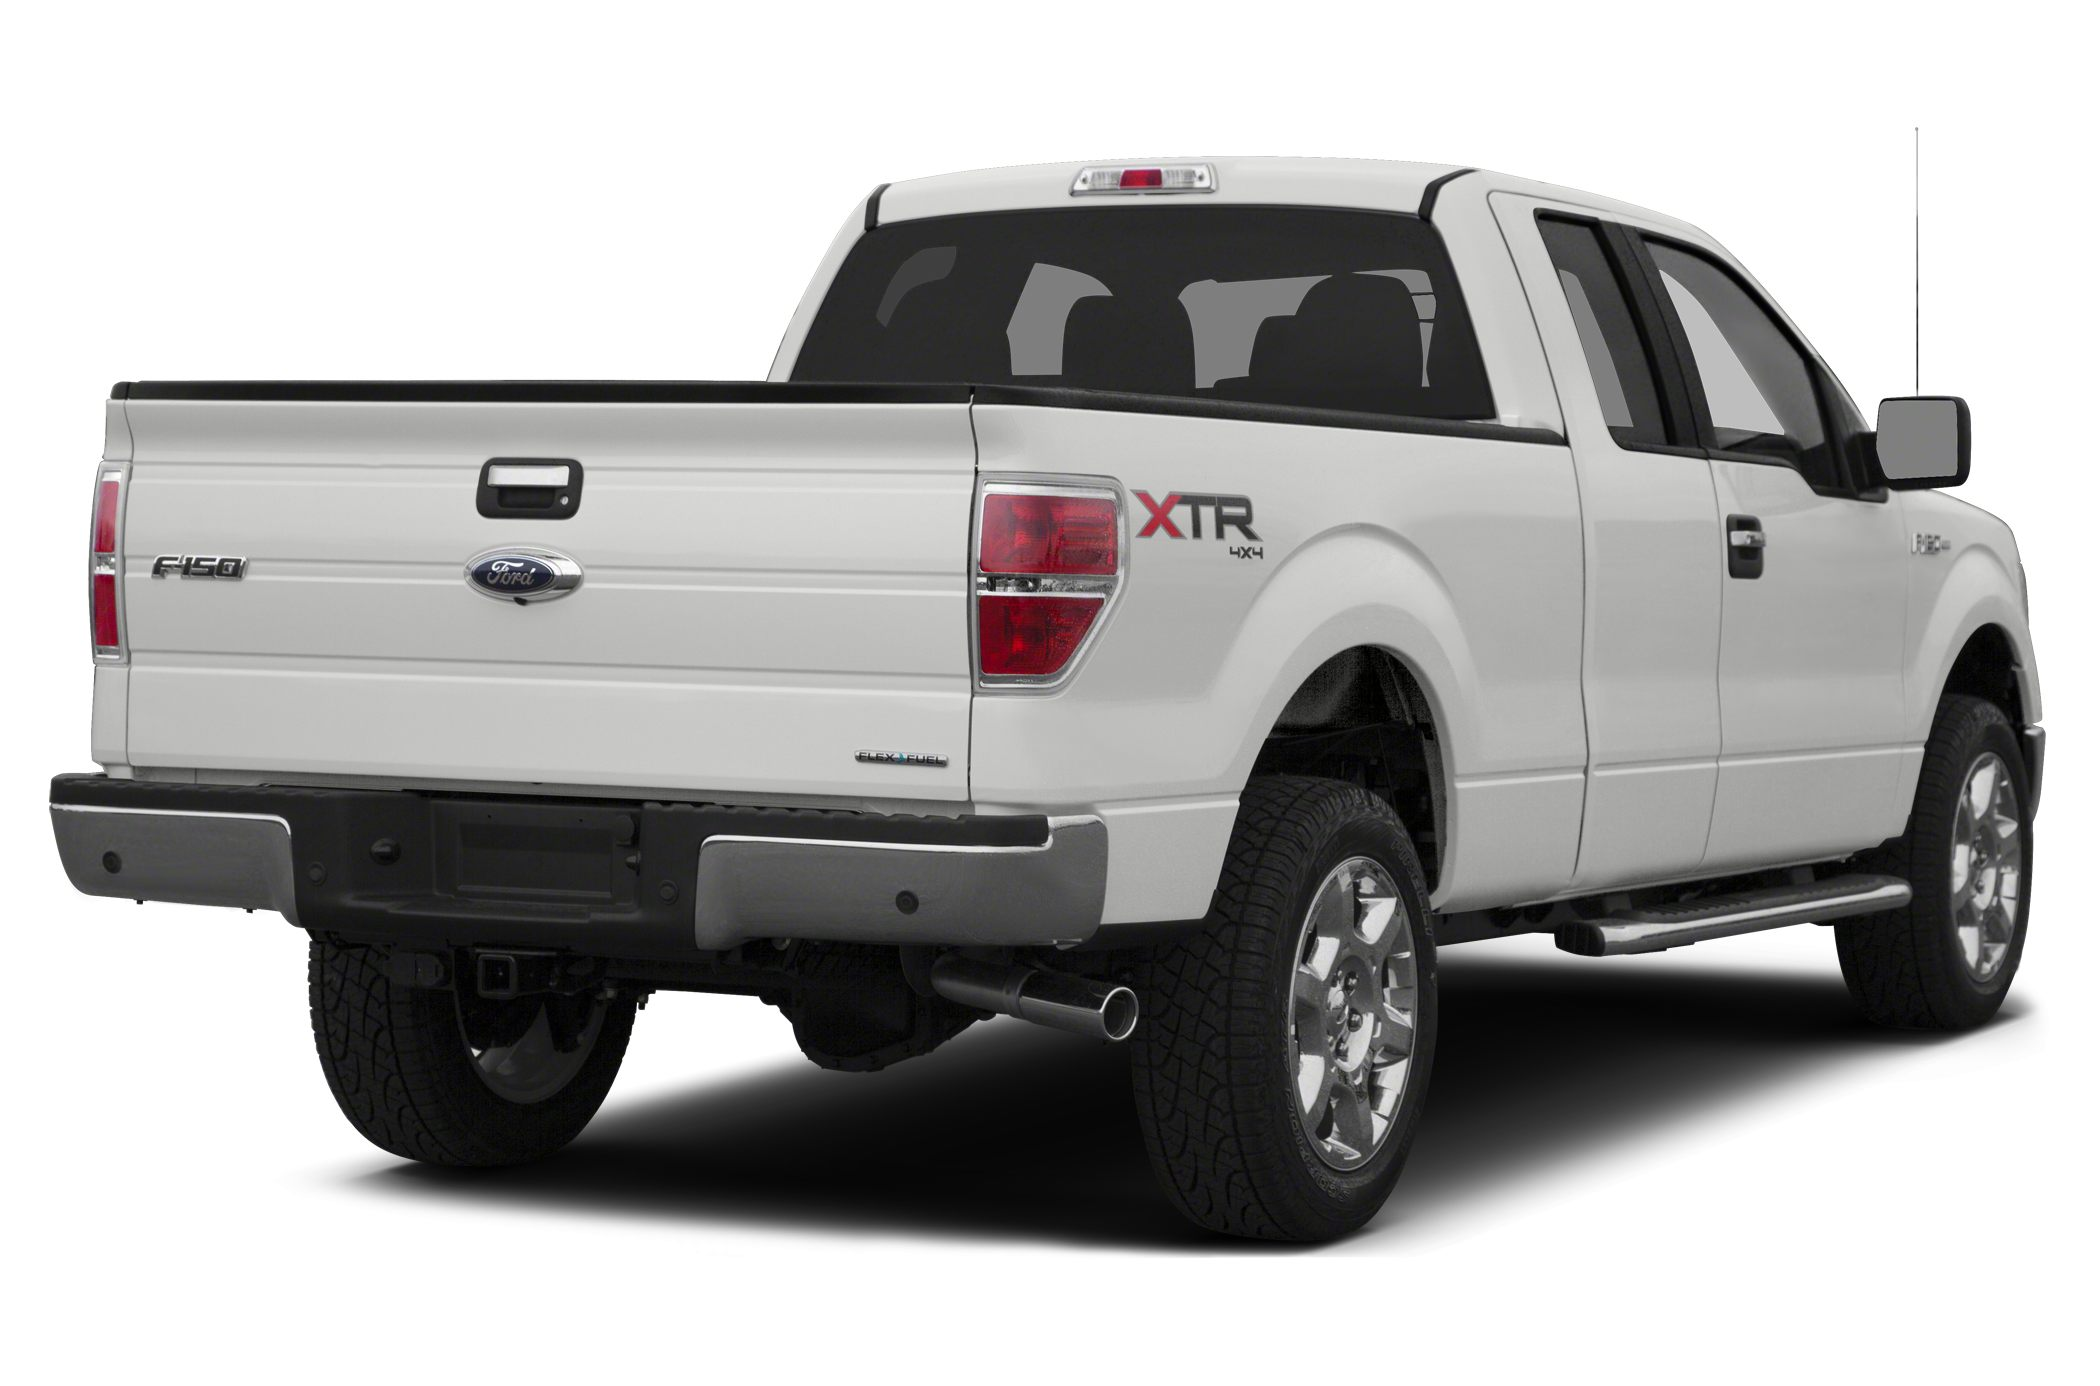 2014 Ford F-150 XLT CARFAX One-Owner Clean CARFAX White 2014 Ford F-150 4WD 6-Speed Automatic El